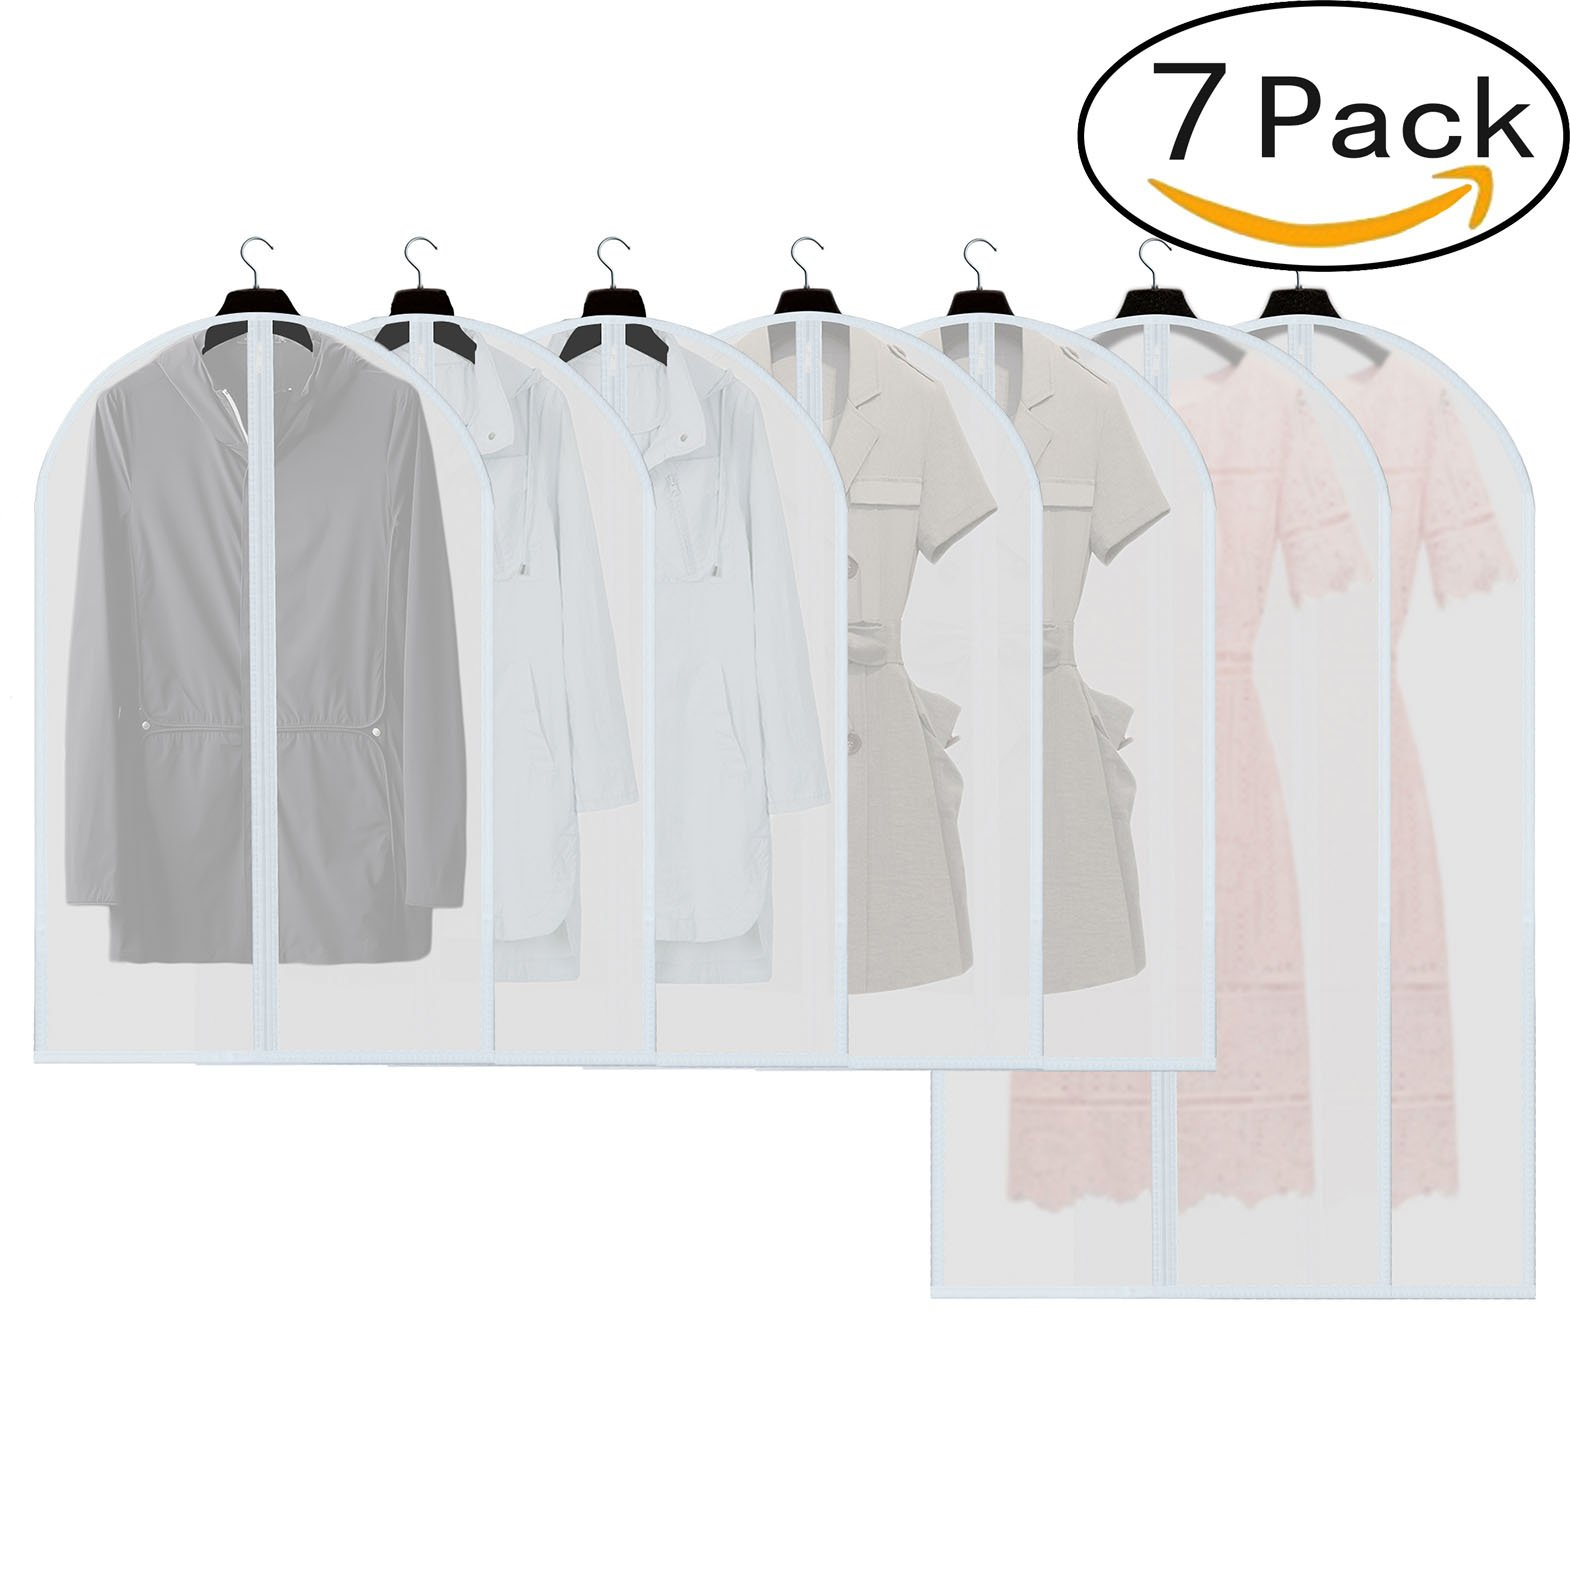 HOKEMP Dust Cover Garment Bag Lightweight Clear Suit Bag Full Zipper Cloth Cover Closet Storage For Coat Dress Travel Garment Cover -White 7 Pack